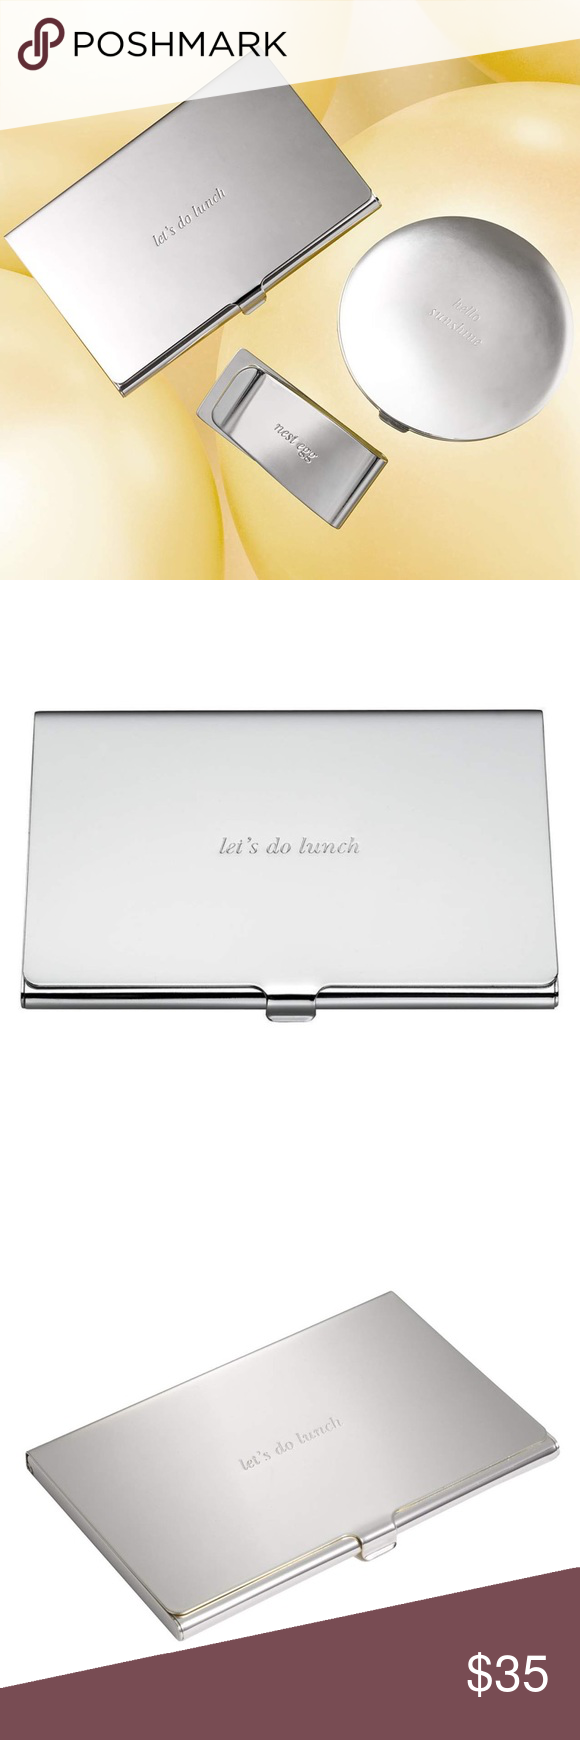 """New Kate Spade """"Lets Do Lunch"""" Card Holder Polished to a gorgeous ..."""